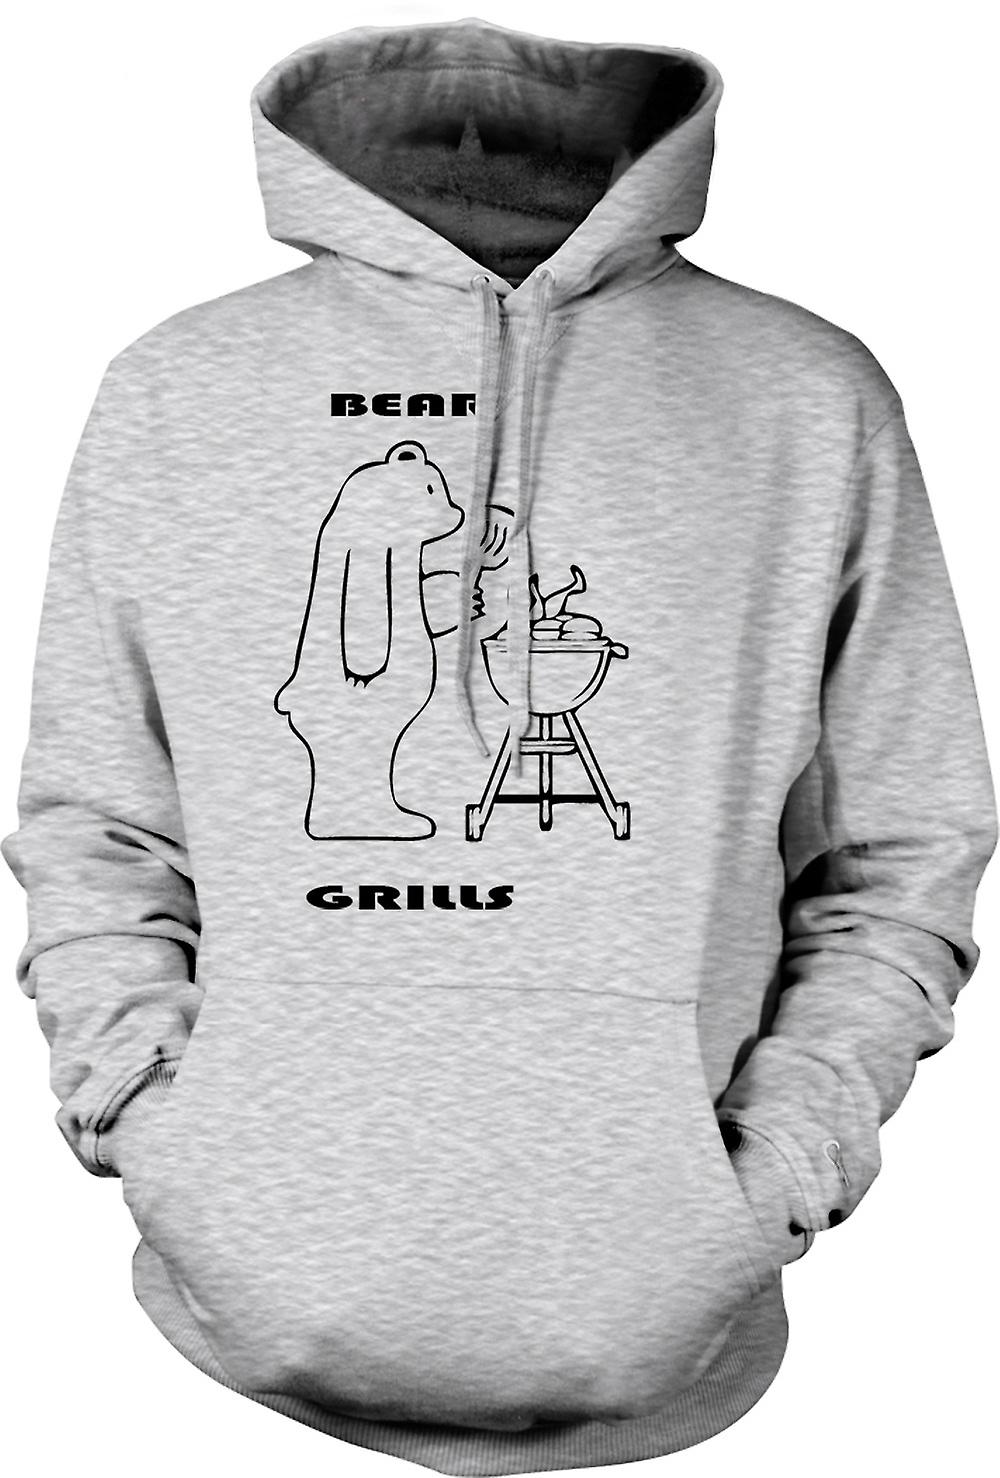 Mens Hoodie - Ours Grills - Quote